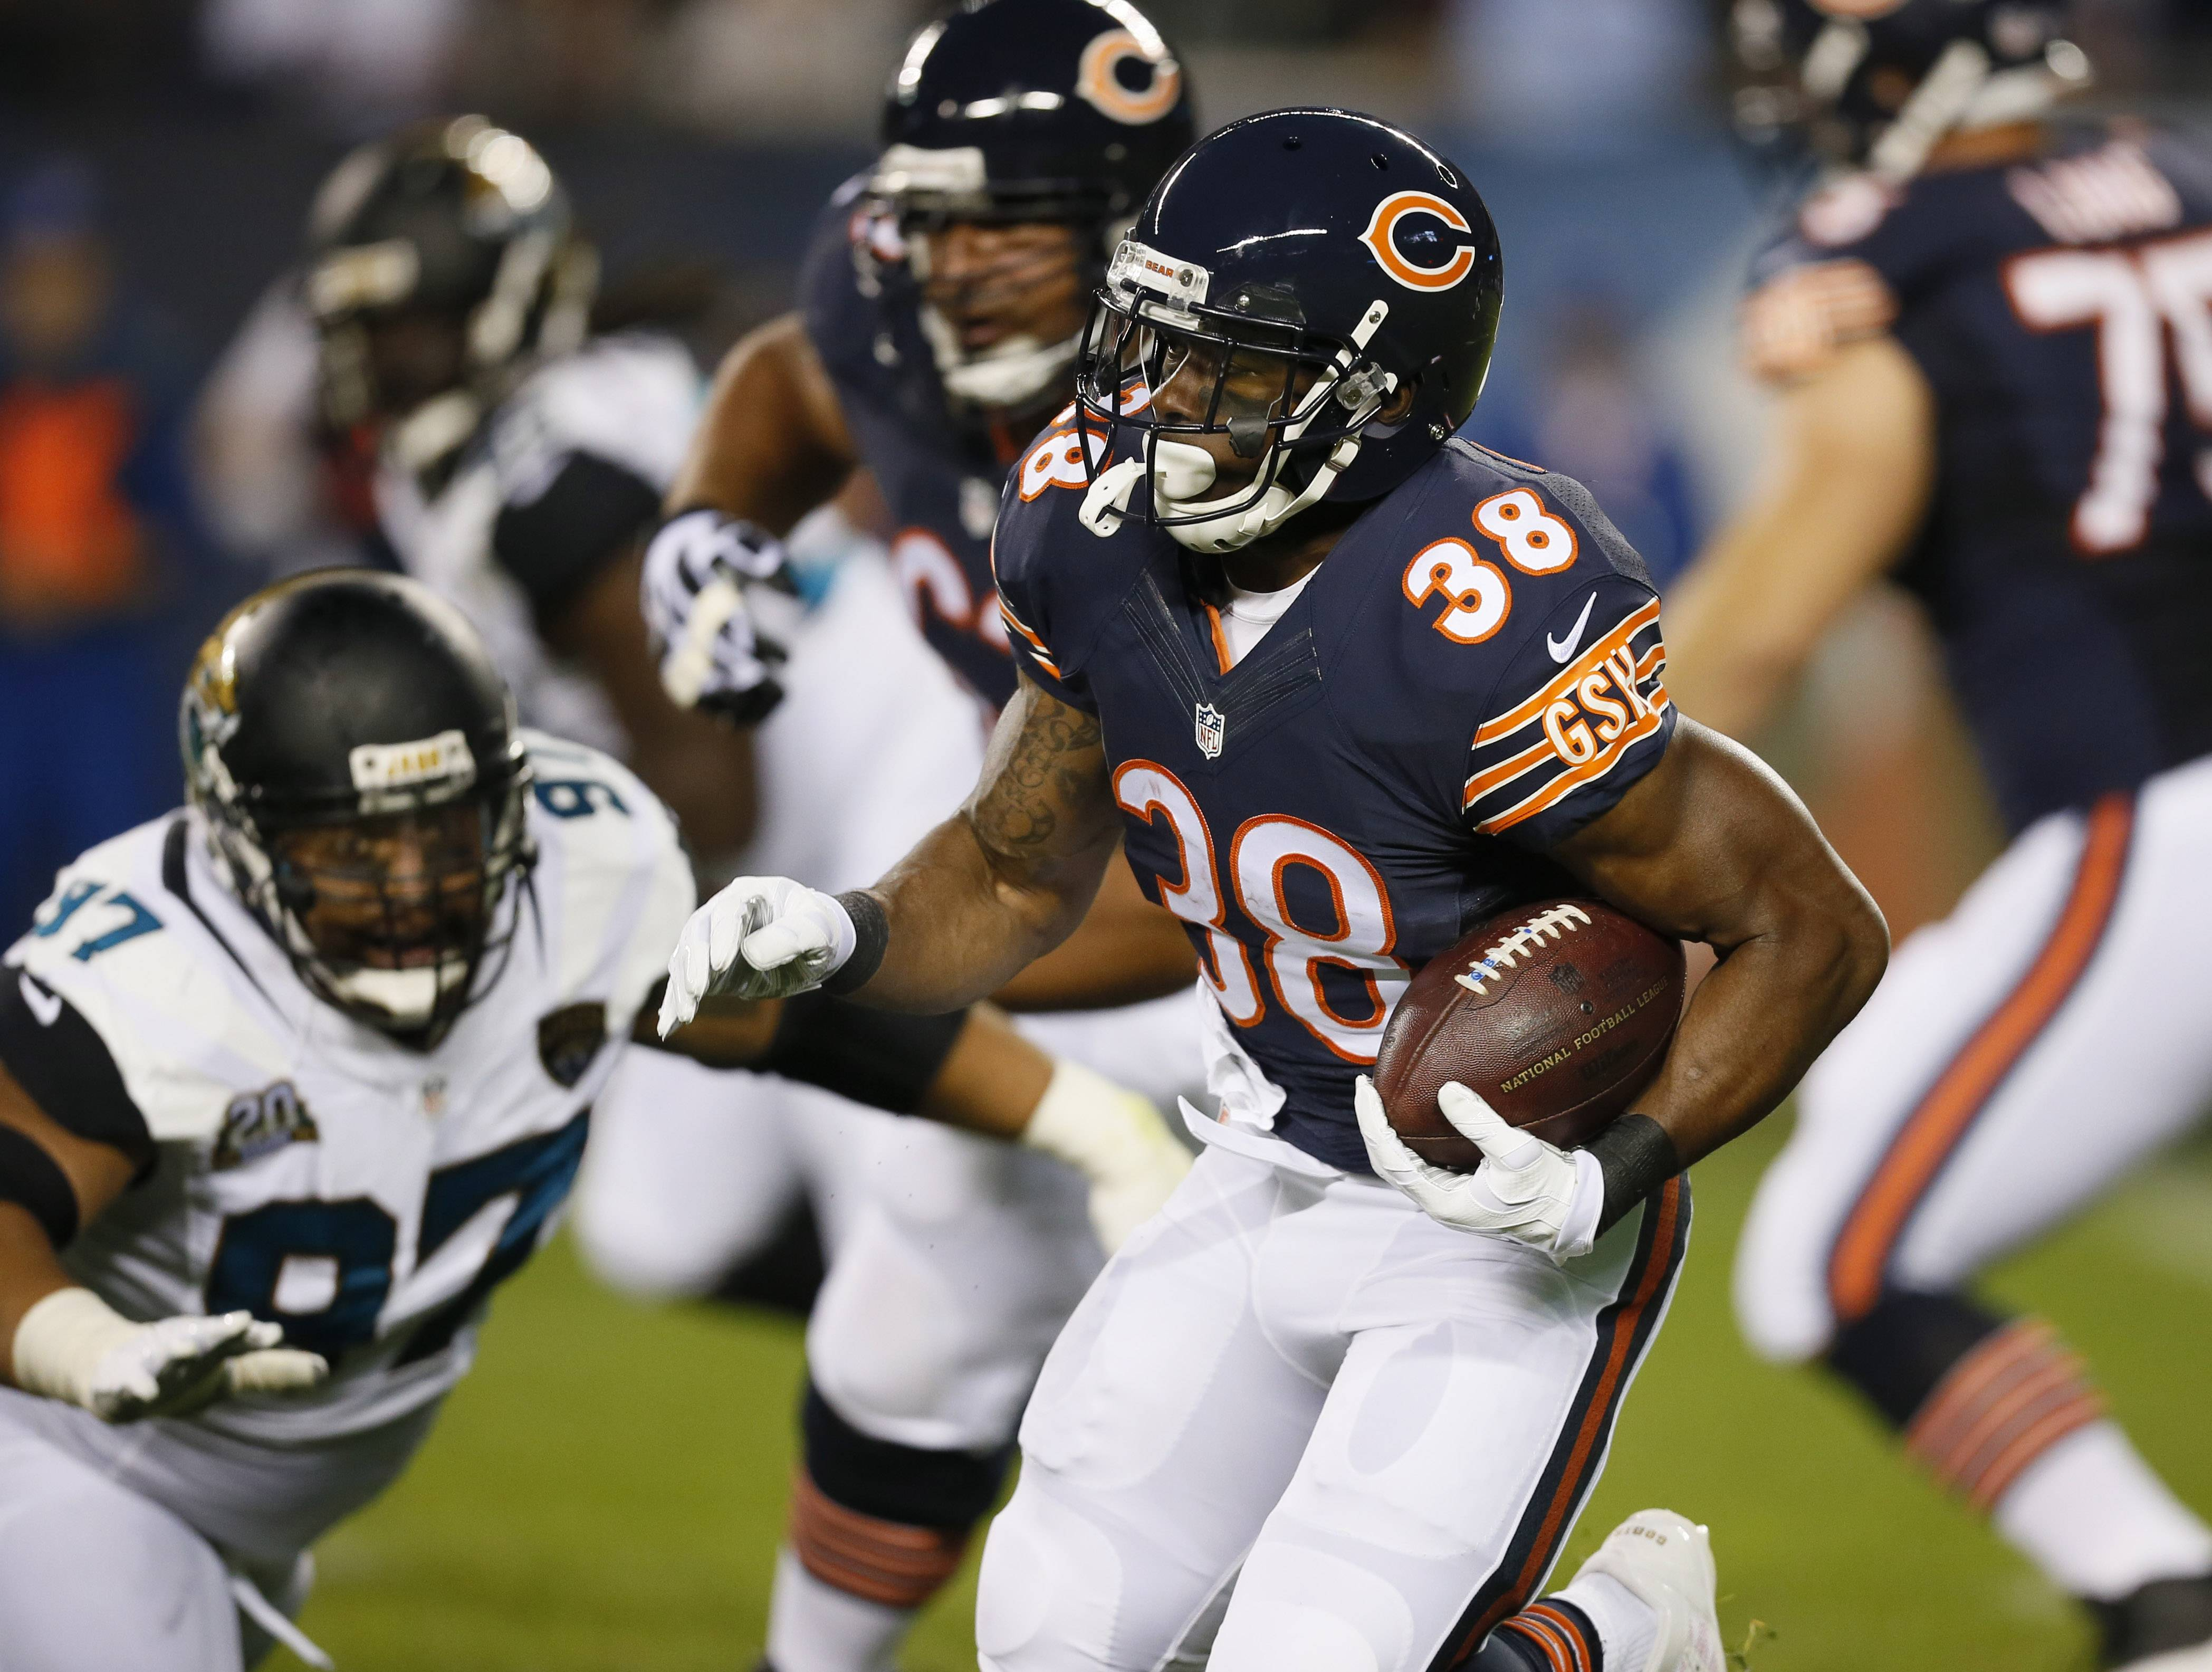 Associated PressBears running back Shaun Draughn (38) rushes against the Jacksonville Jaguars during the first half of an NFL preseason football game in Chicago Thursday.